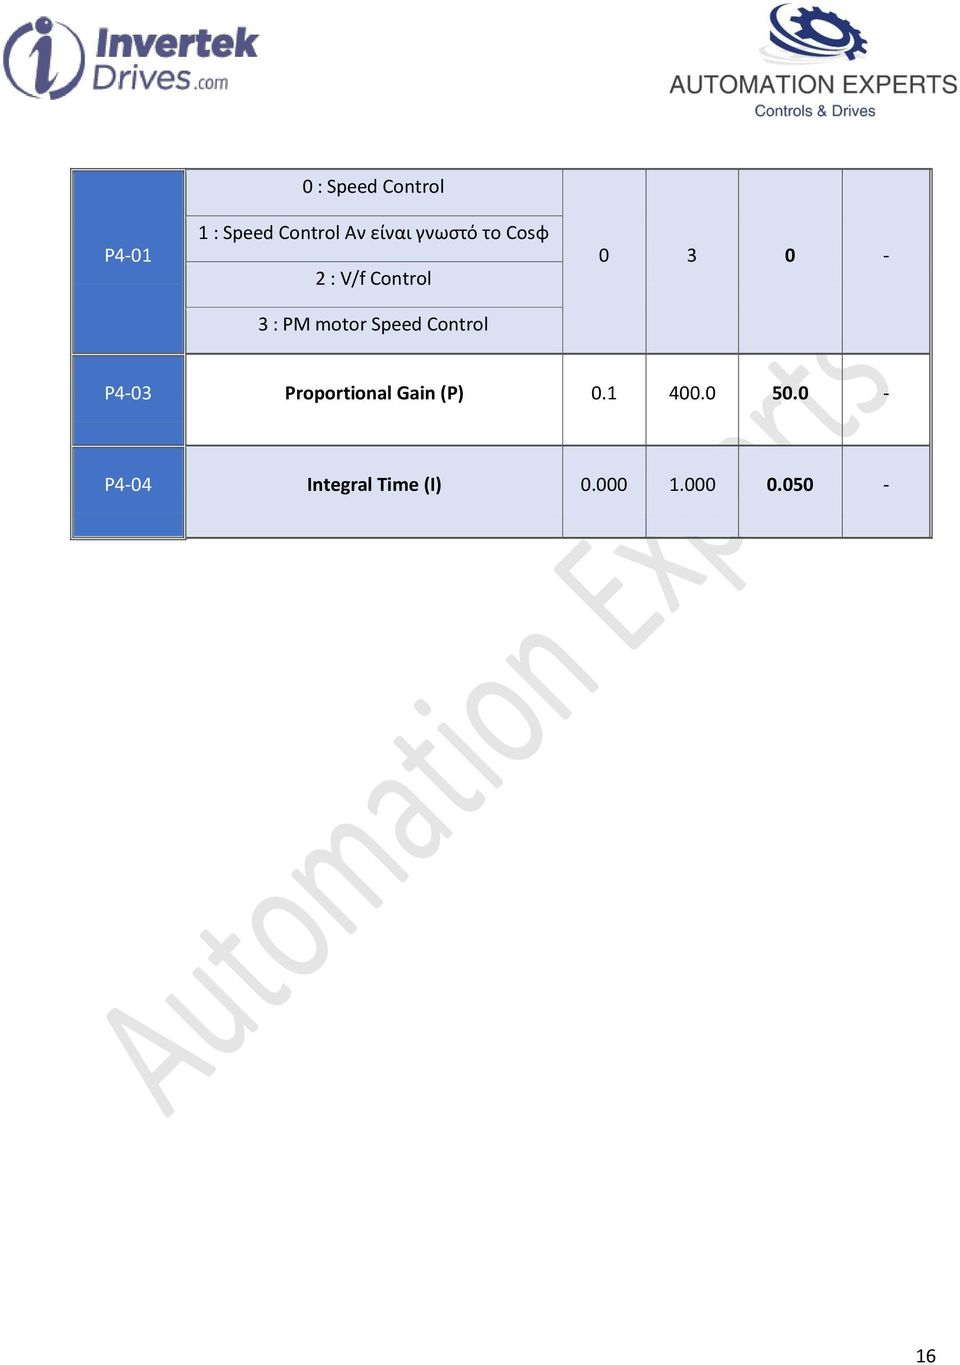 Control 0 3 0 - P4-03 Proportional Gain (P) 0.1 400.